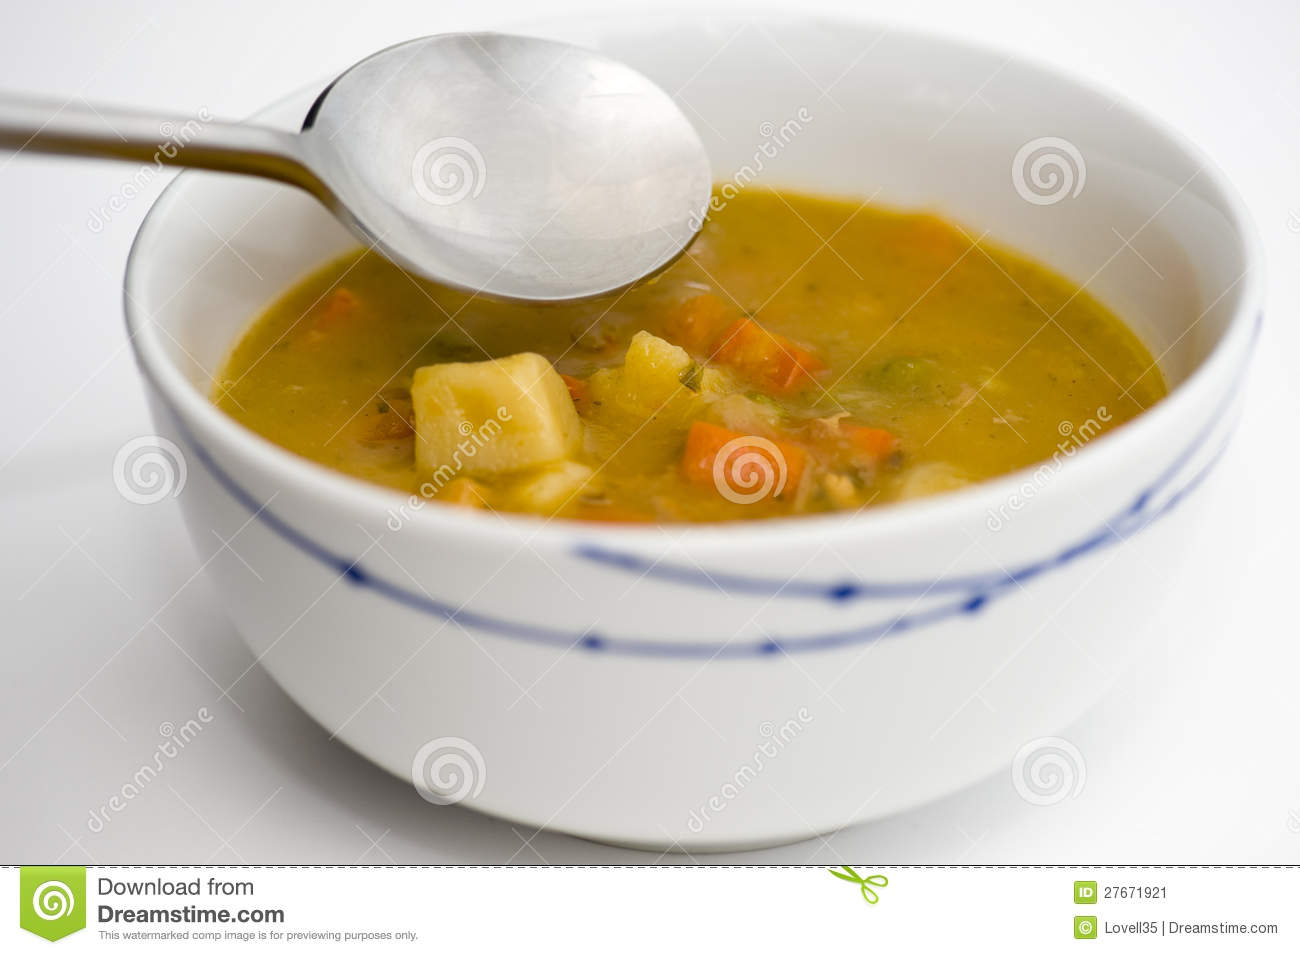 Soup Spoon Clipart Chicken Soup With Spoon